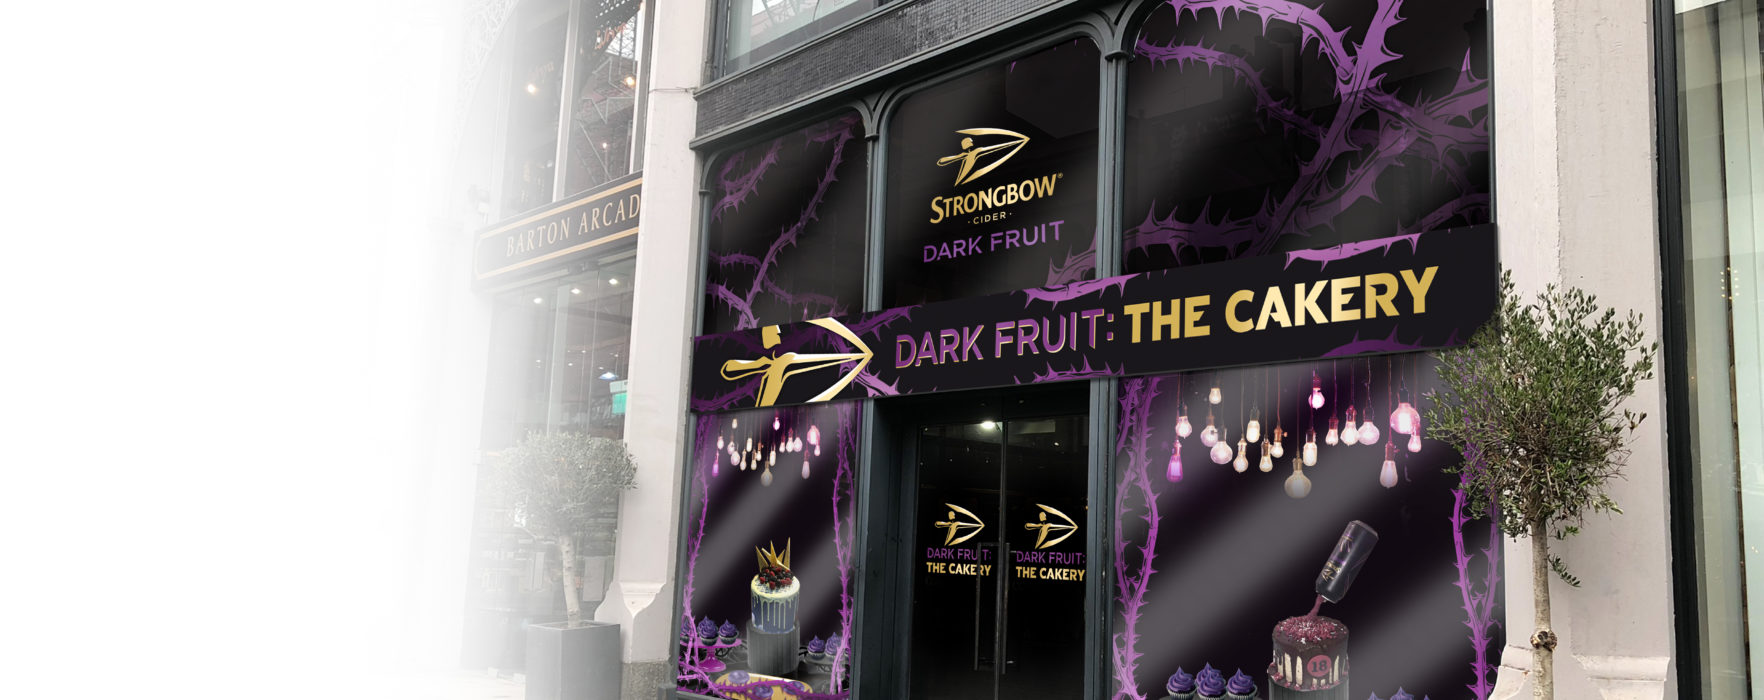 There's a Strongbow Dark Fruit cakery opening in Manchester!